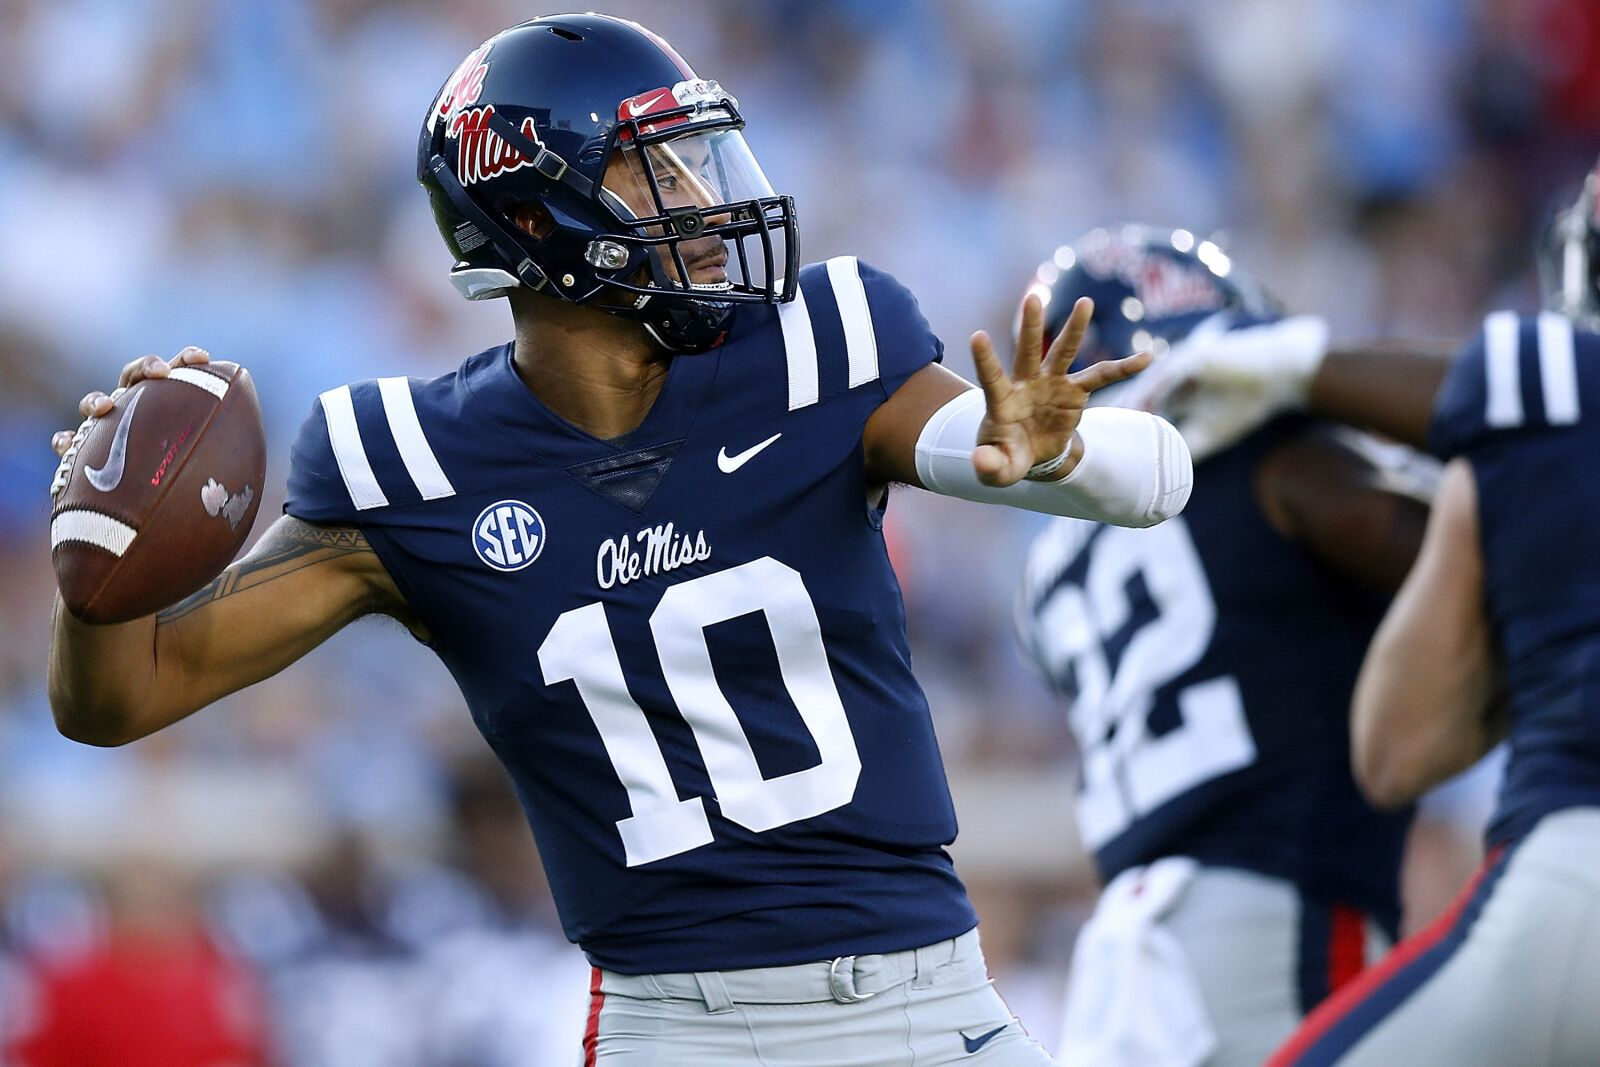 reputable site 7c46d 198bf Ole Miss Football: 3 bold predictions for bounce-back vs ...